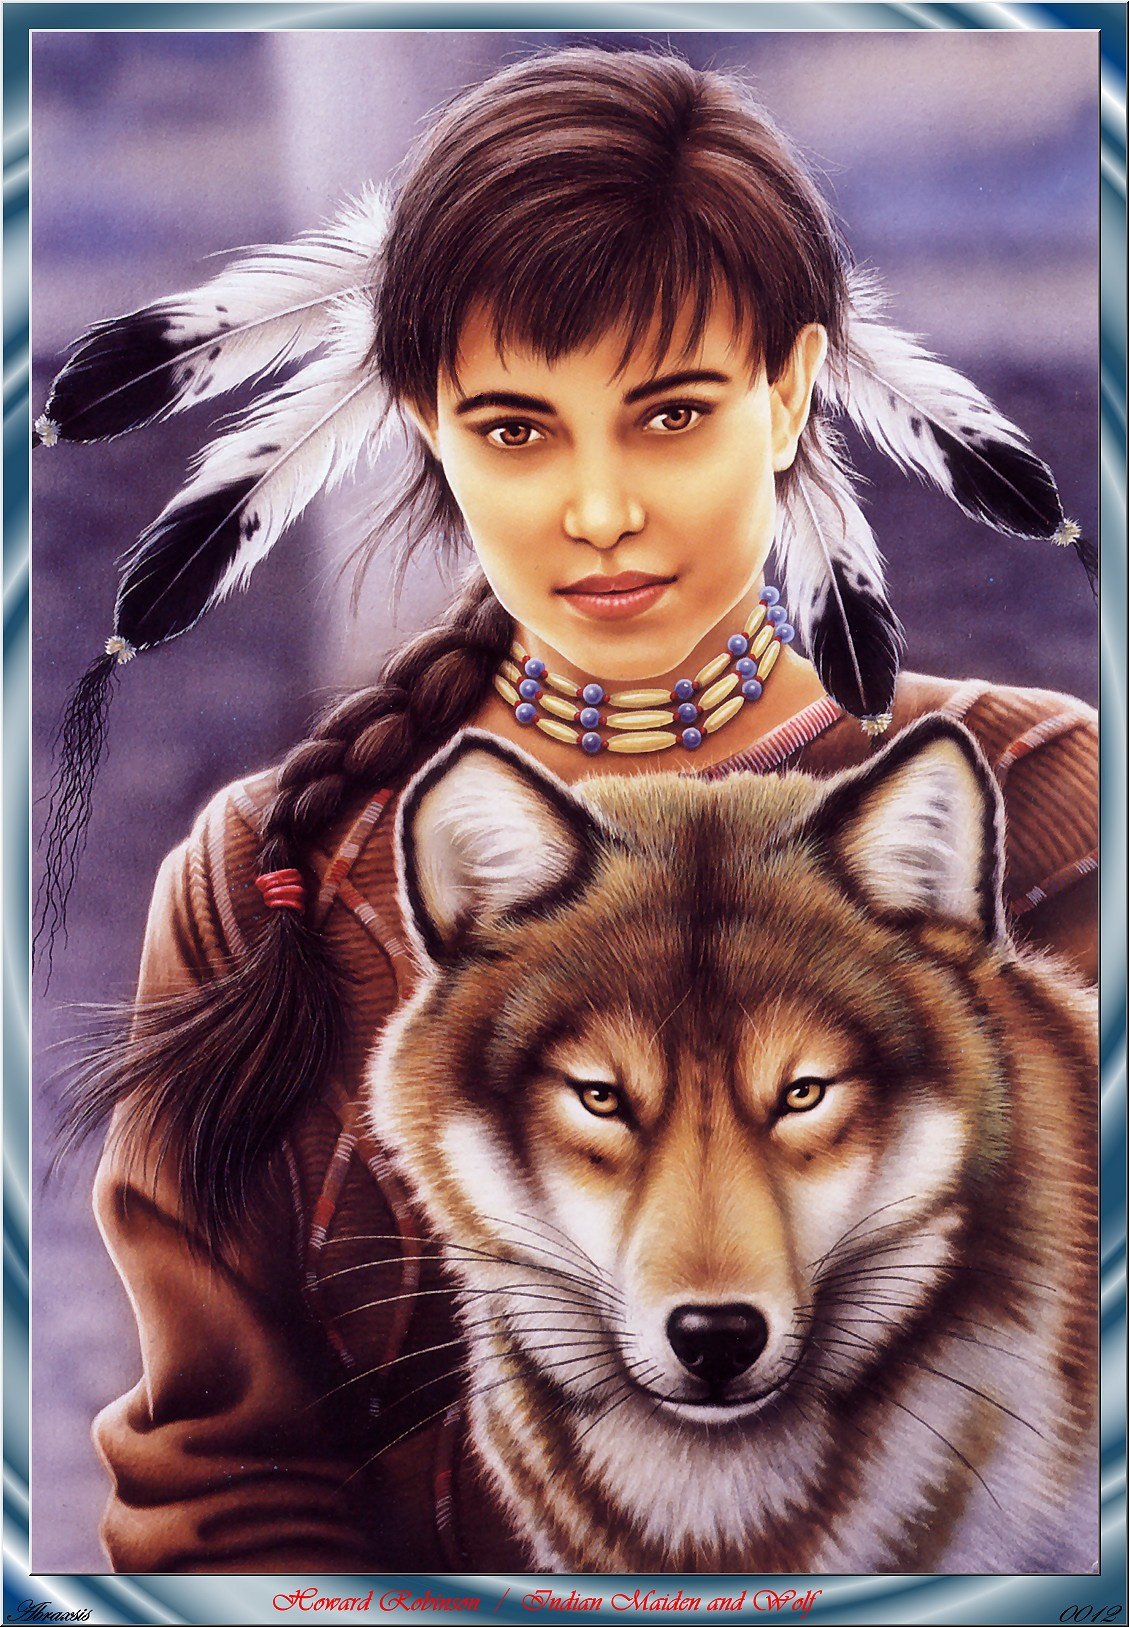 Howard Robinson. Indian maiden and wolf